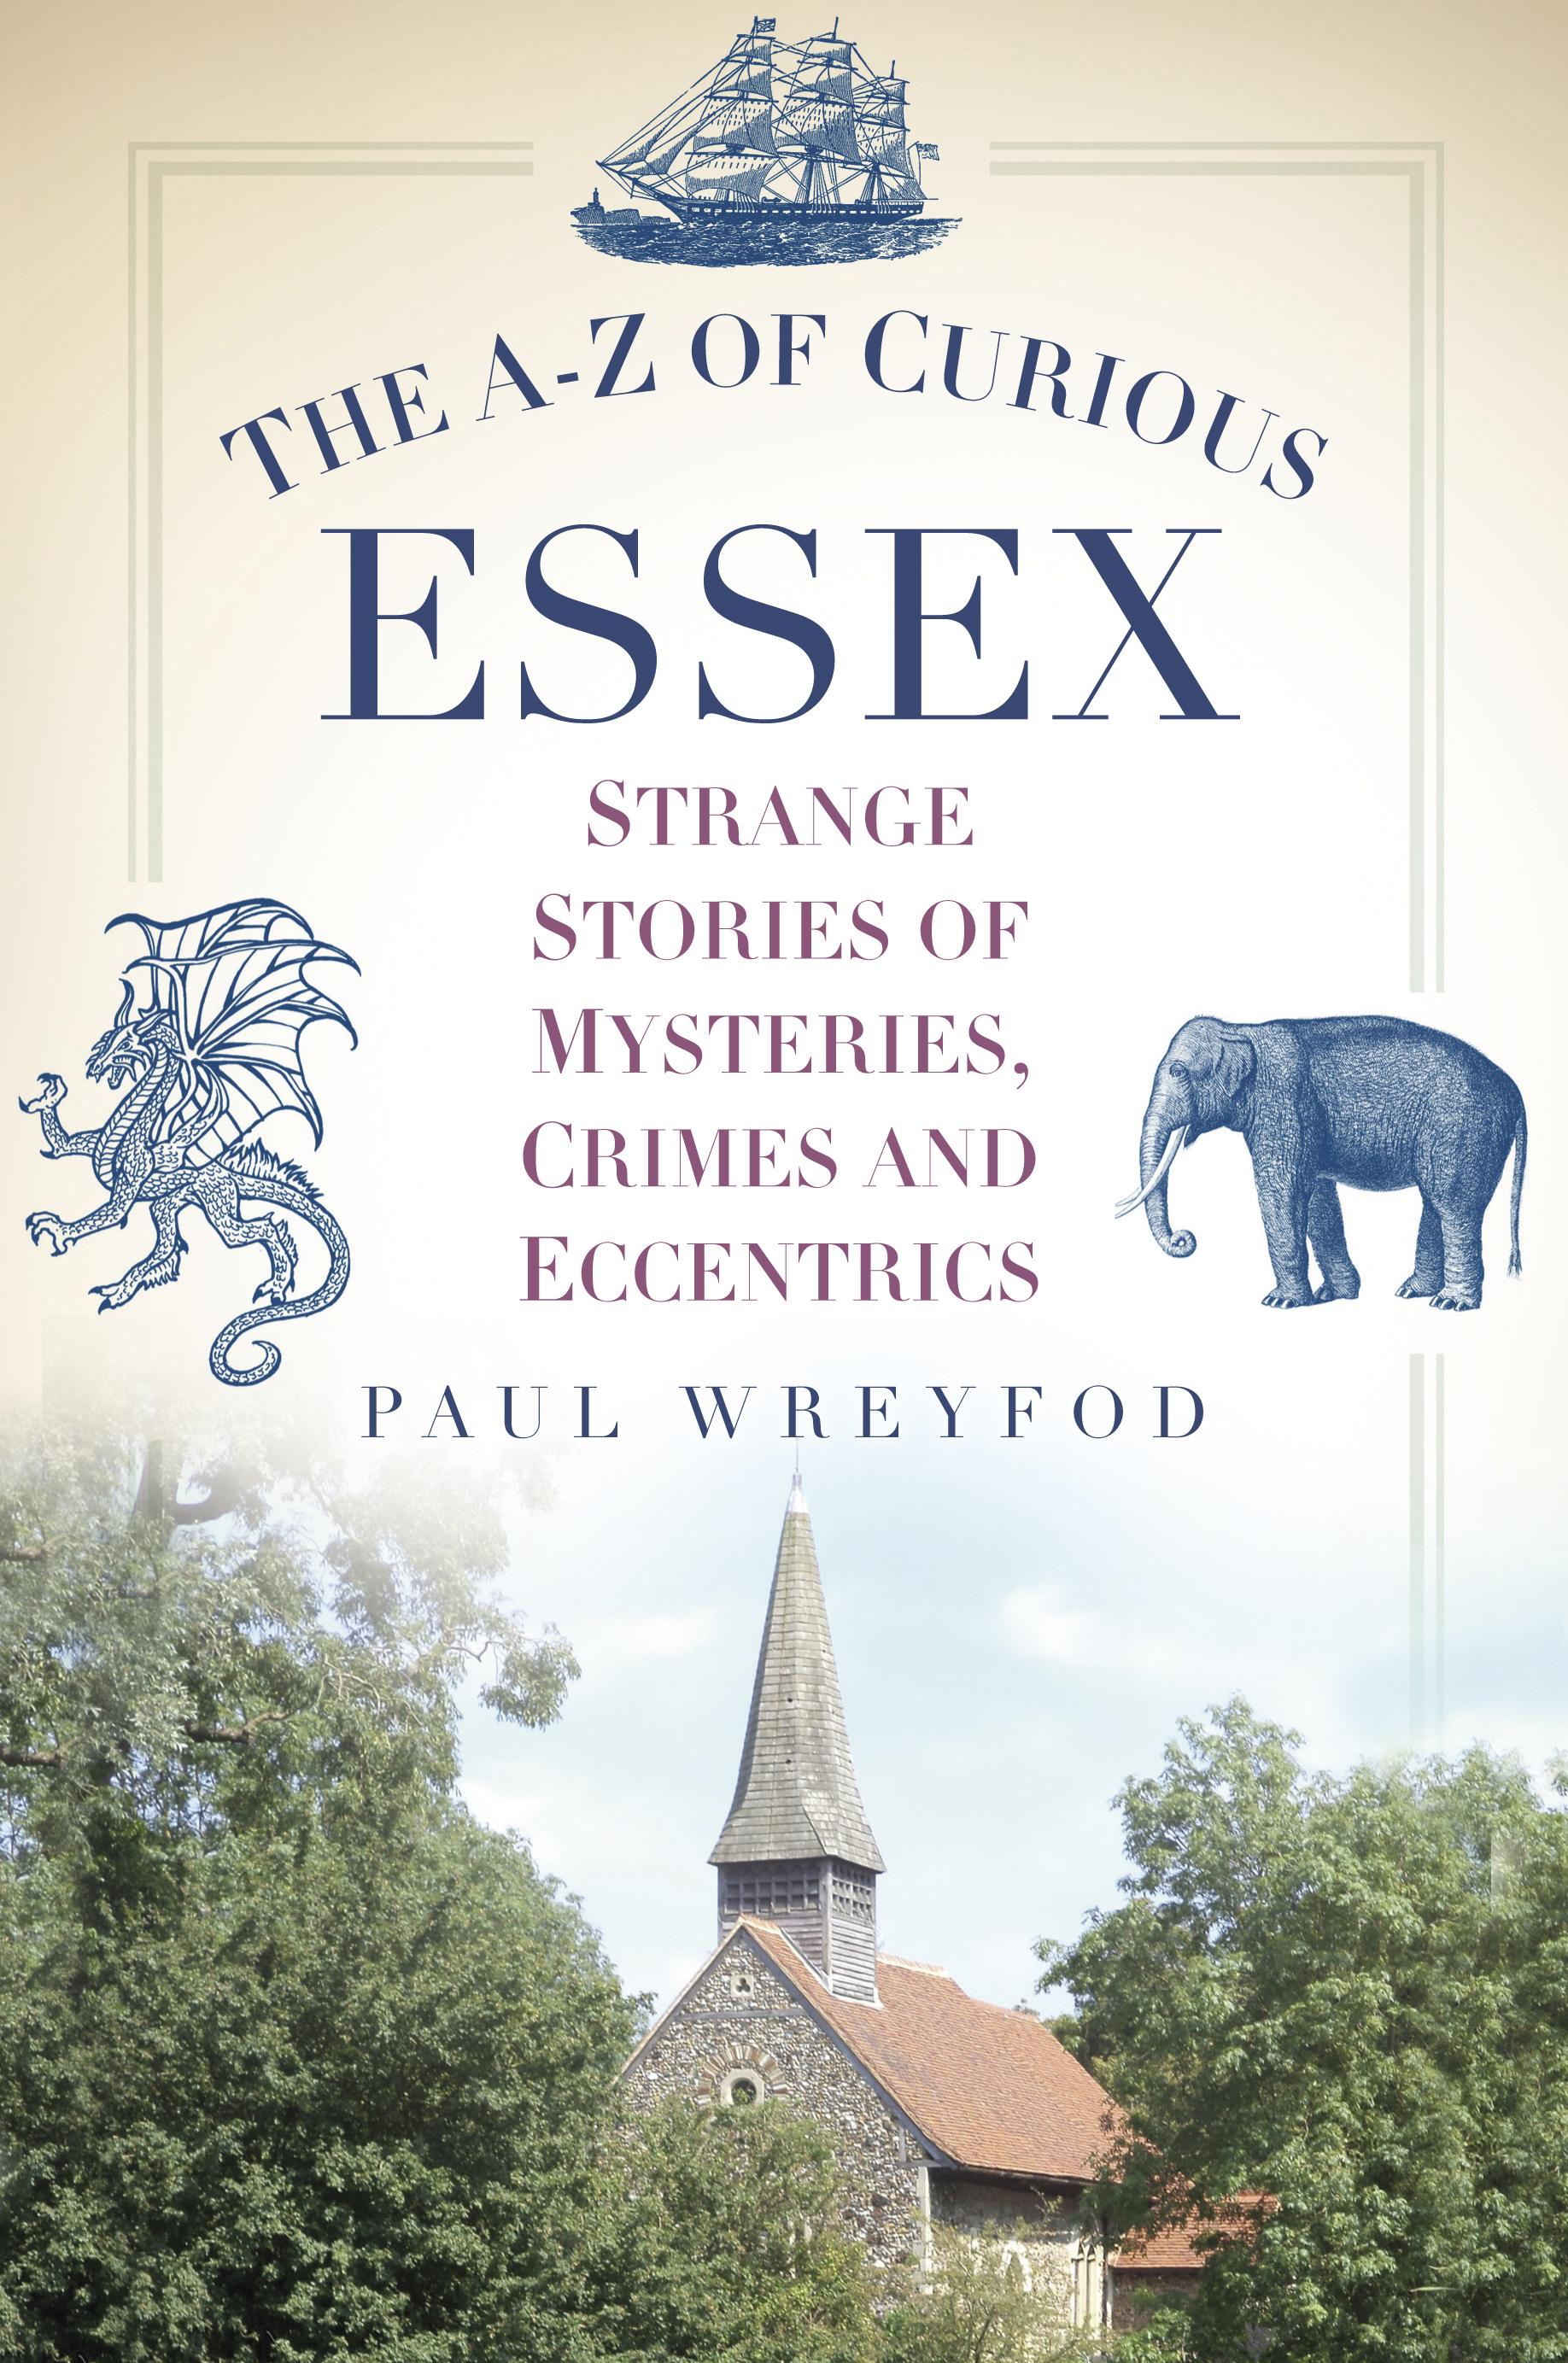 The A-Z of Curious Essex Strange Stories of Mysteries,  Crimes and Eccentrics